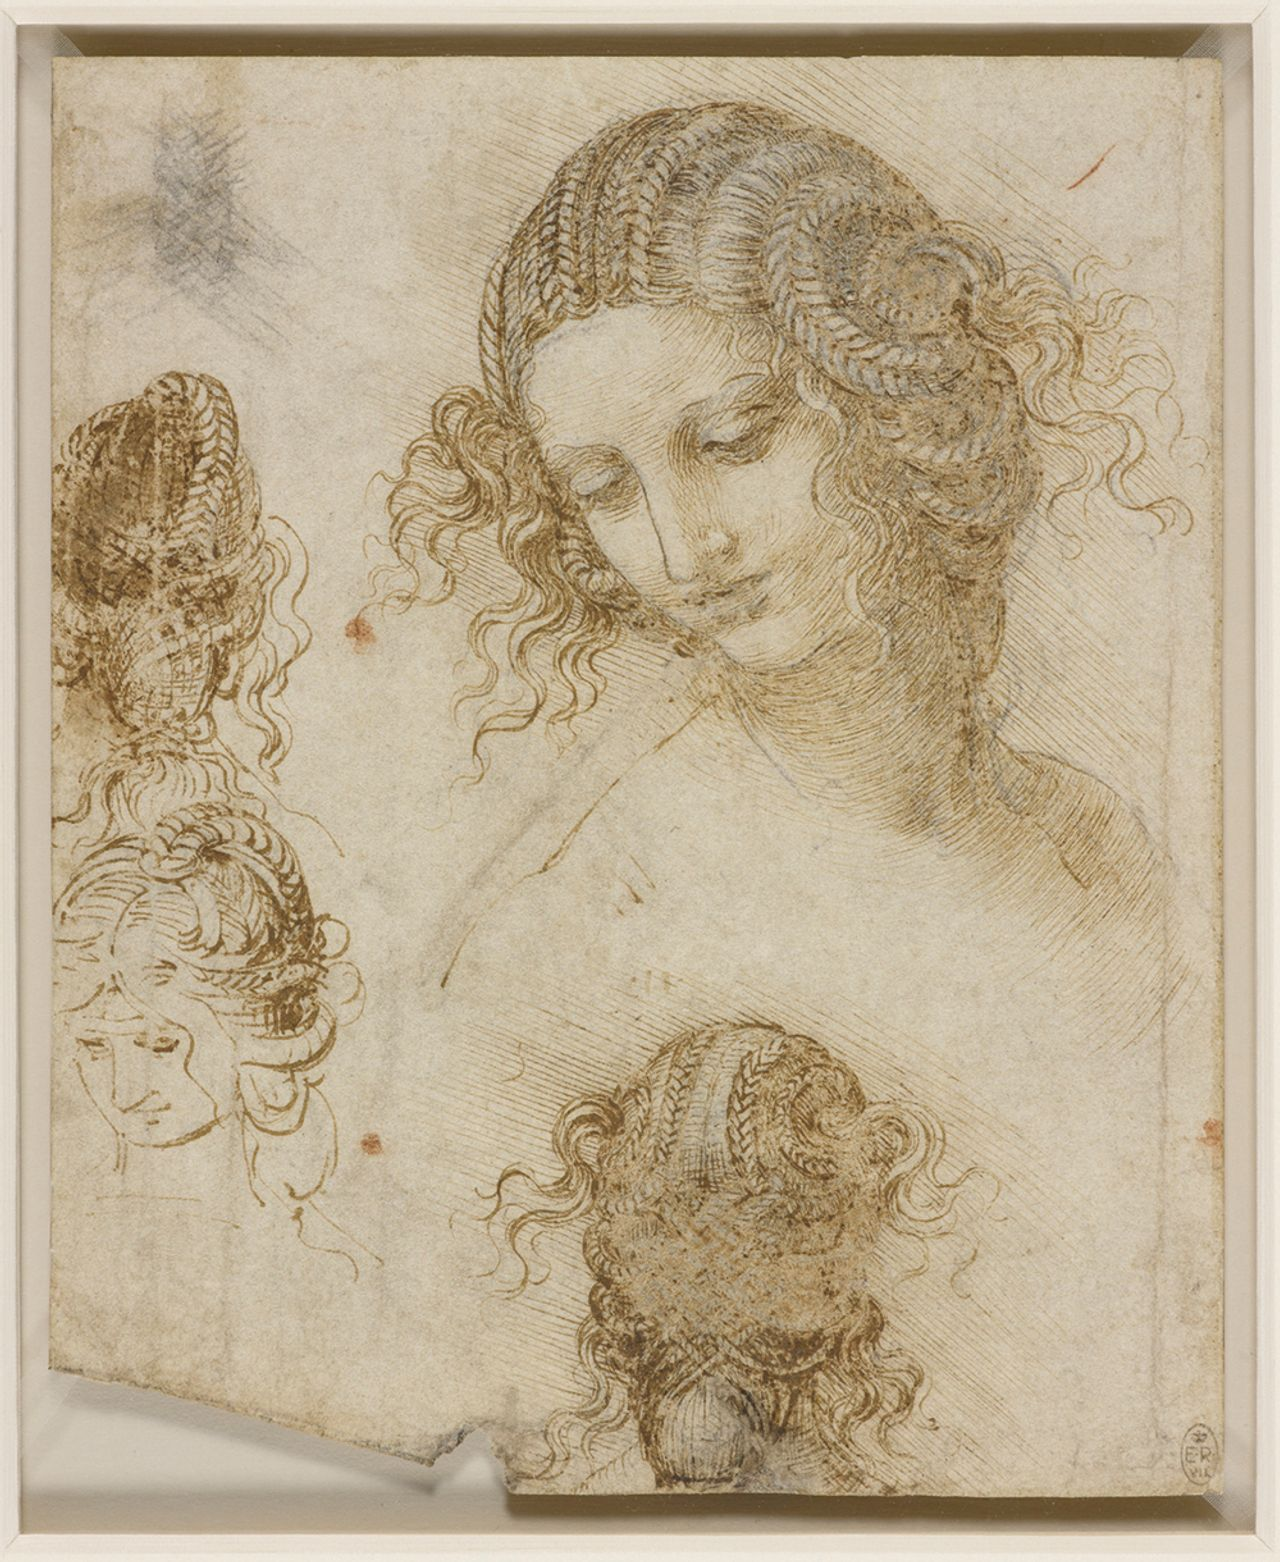 The head of Leda (around 1505-08), a study for Leonardo's missing Leda and the Swan, is one of 23 works to be lent to the Louvre show by the Royal Collection Royal Collection Trust, © Her Majesty Queen Elizabeth II 2019